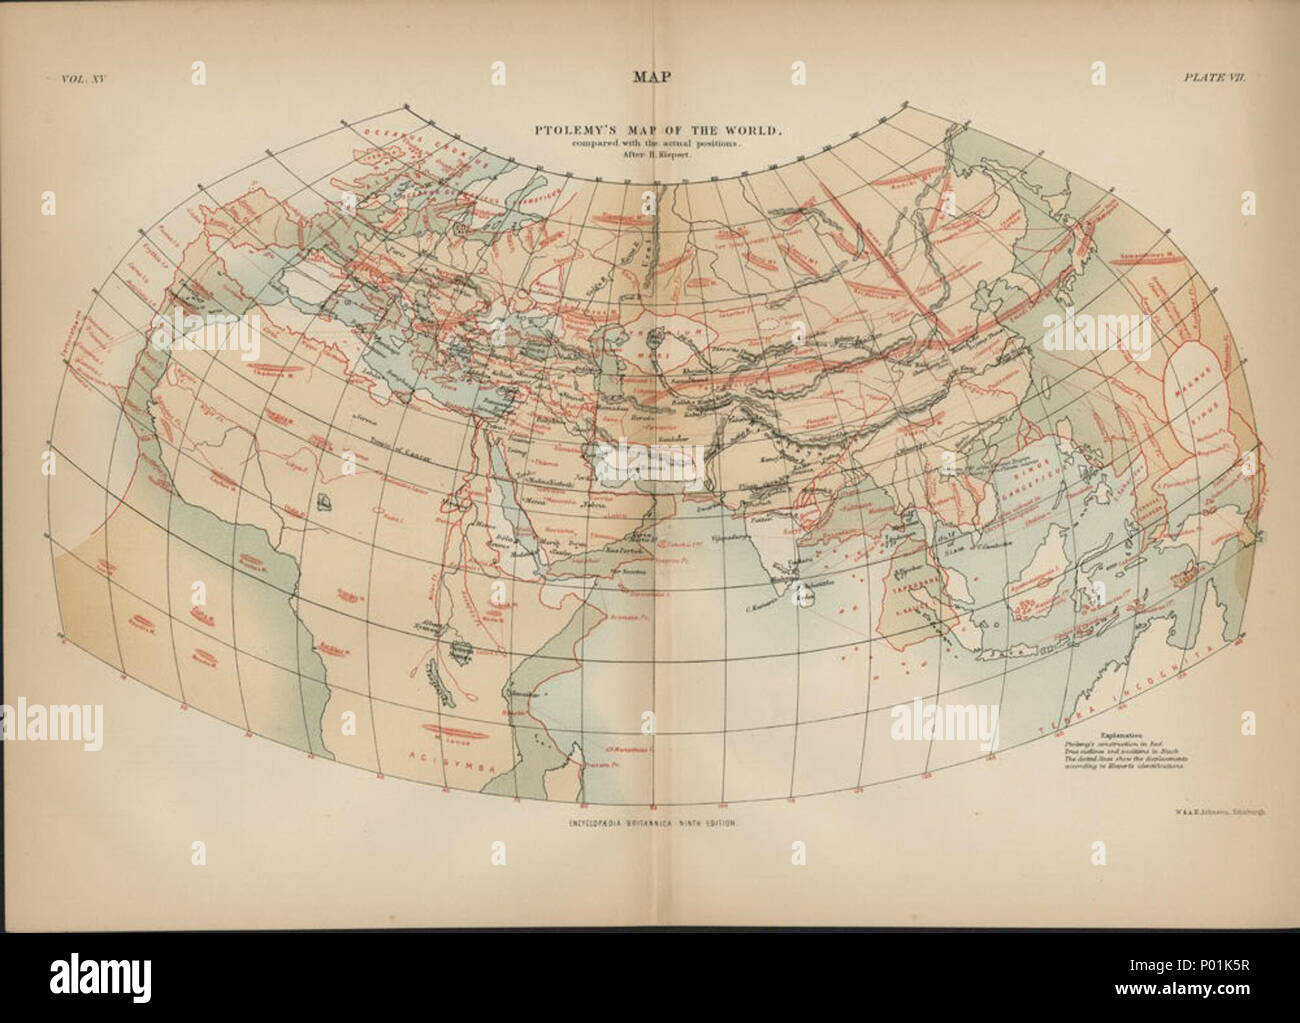 English A World Map On Ptolemy S Second Projection With The